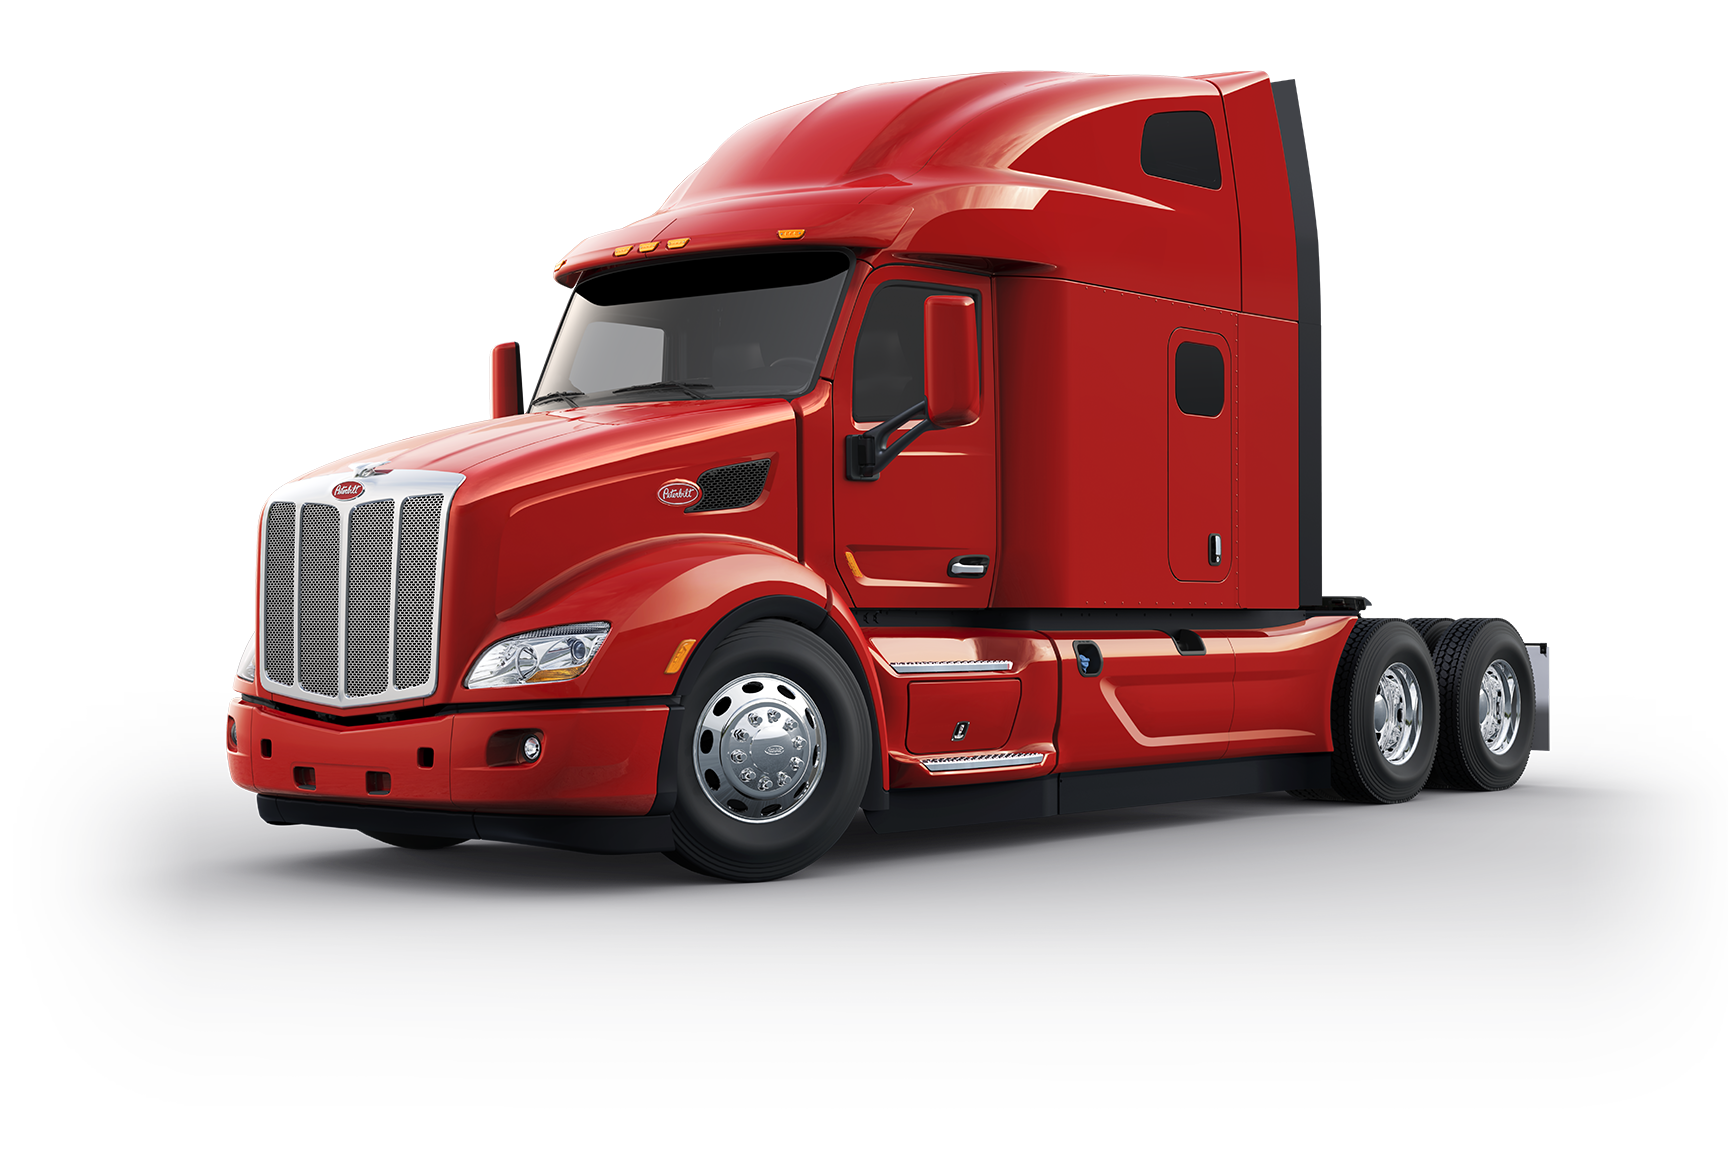 Peterbilt drawing day cab. Announces several new features